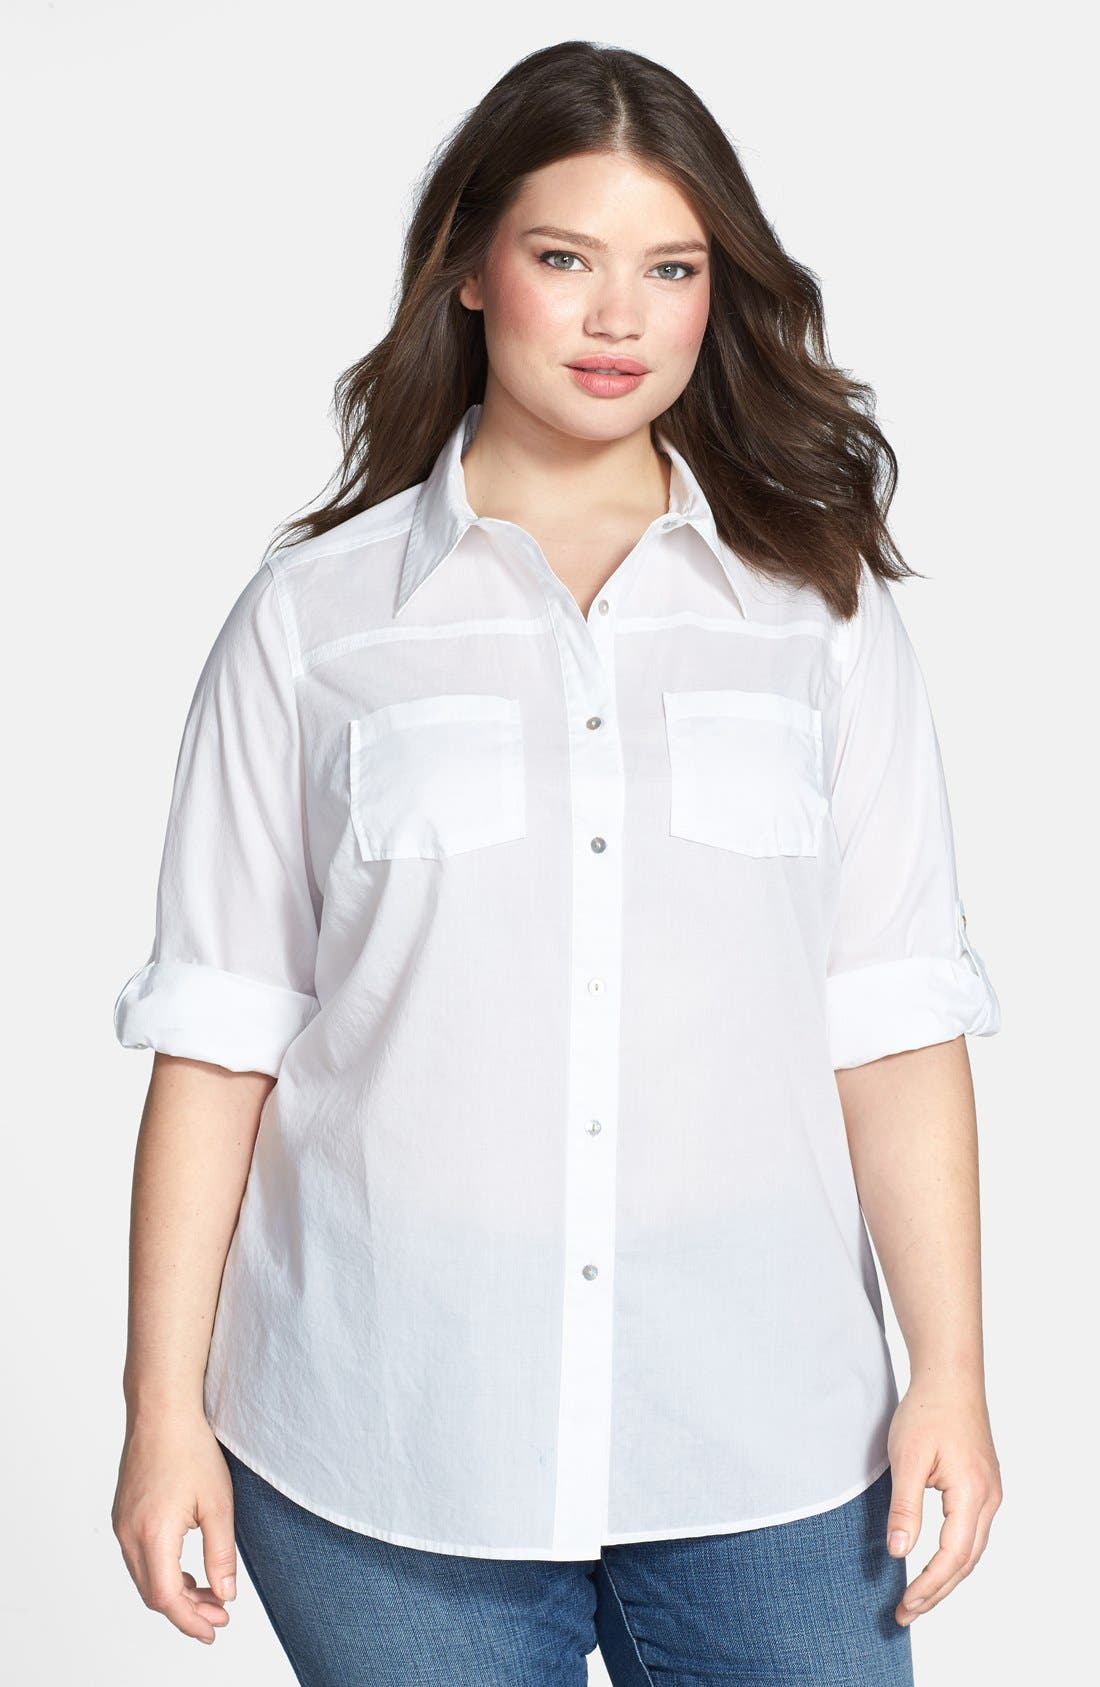 Alternate Image 1 Selected - Foxcroft Shaped Garment Dyed Cotton Lawn Shirt (Plus Size)